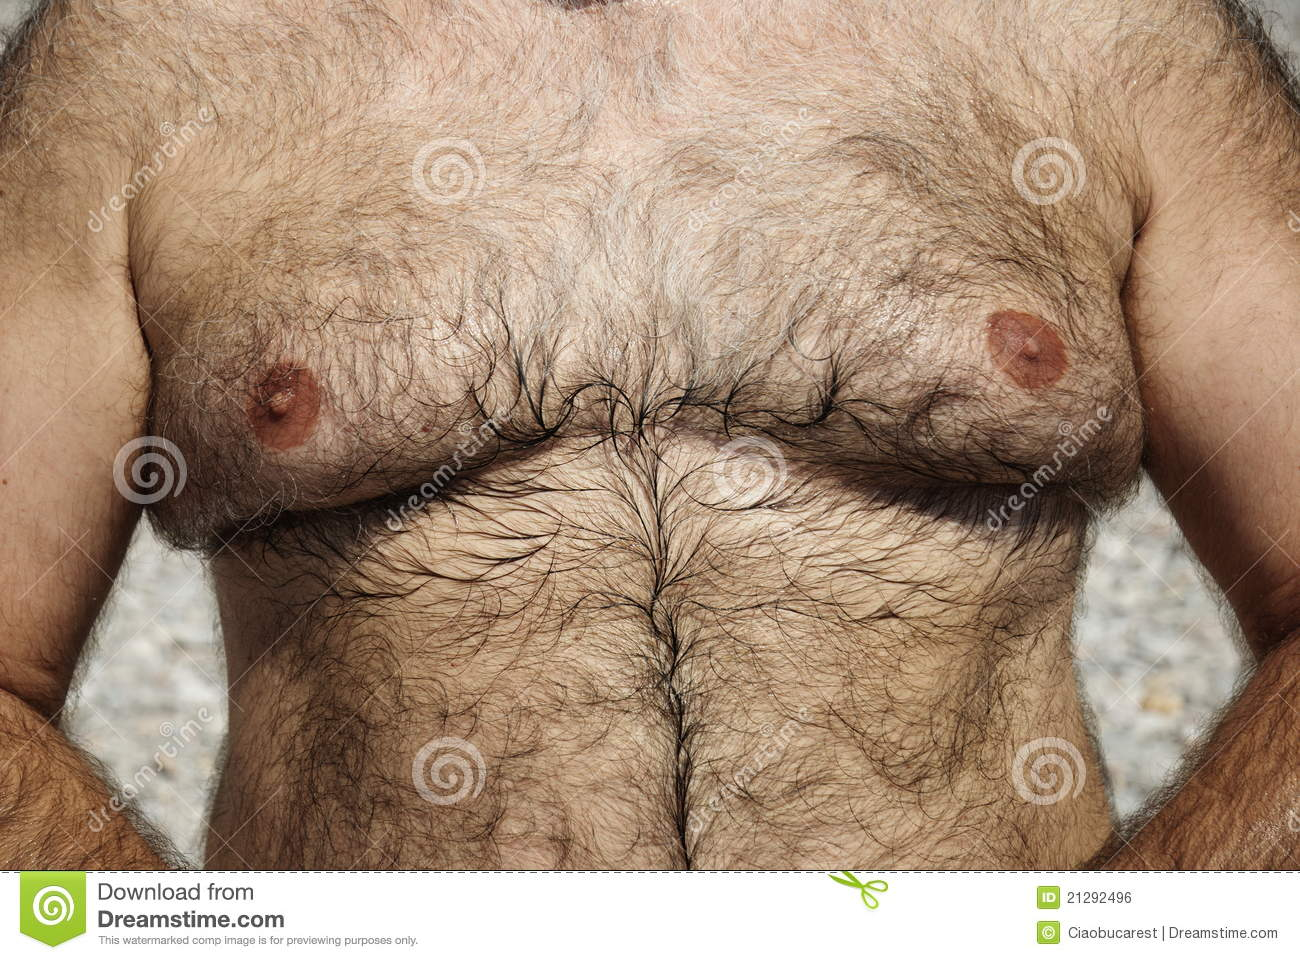 Hairy Chest Of Overweight Man Royalty Free Stock Image